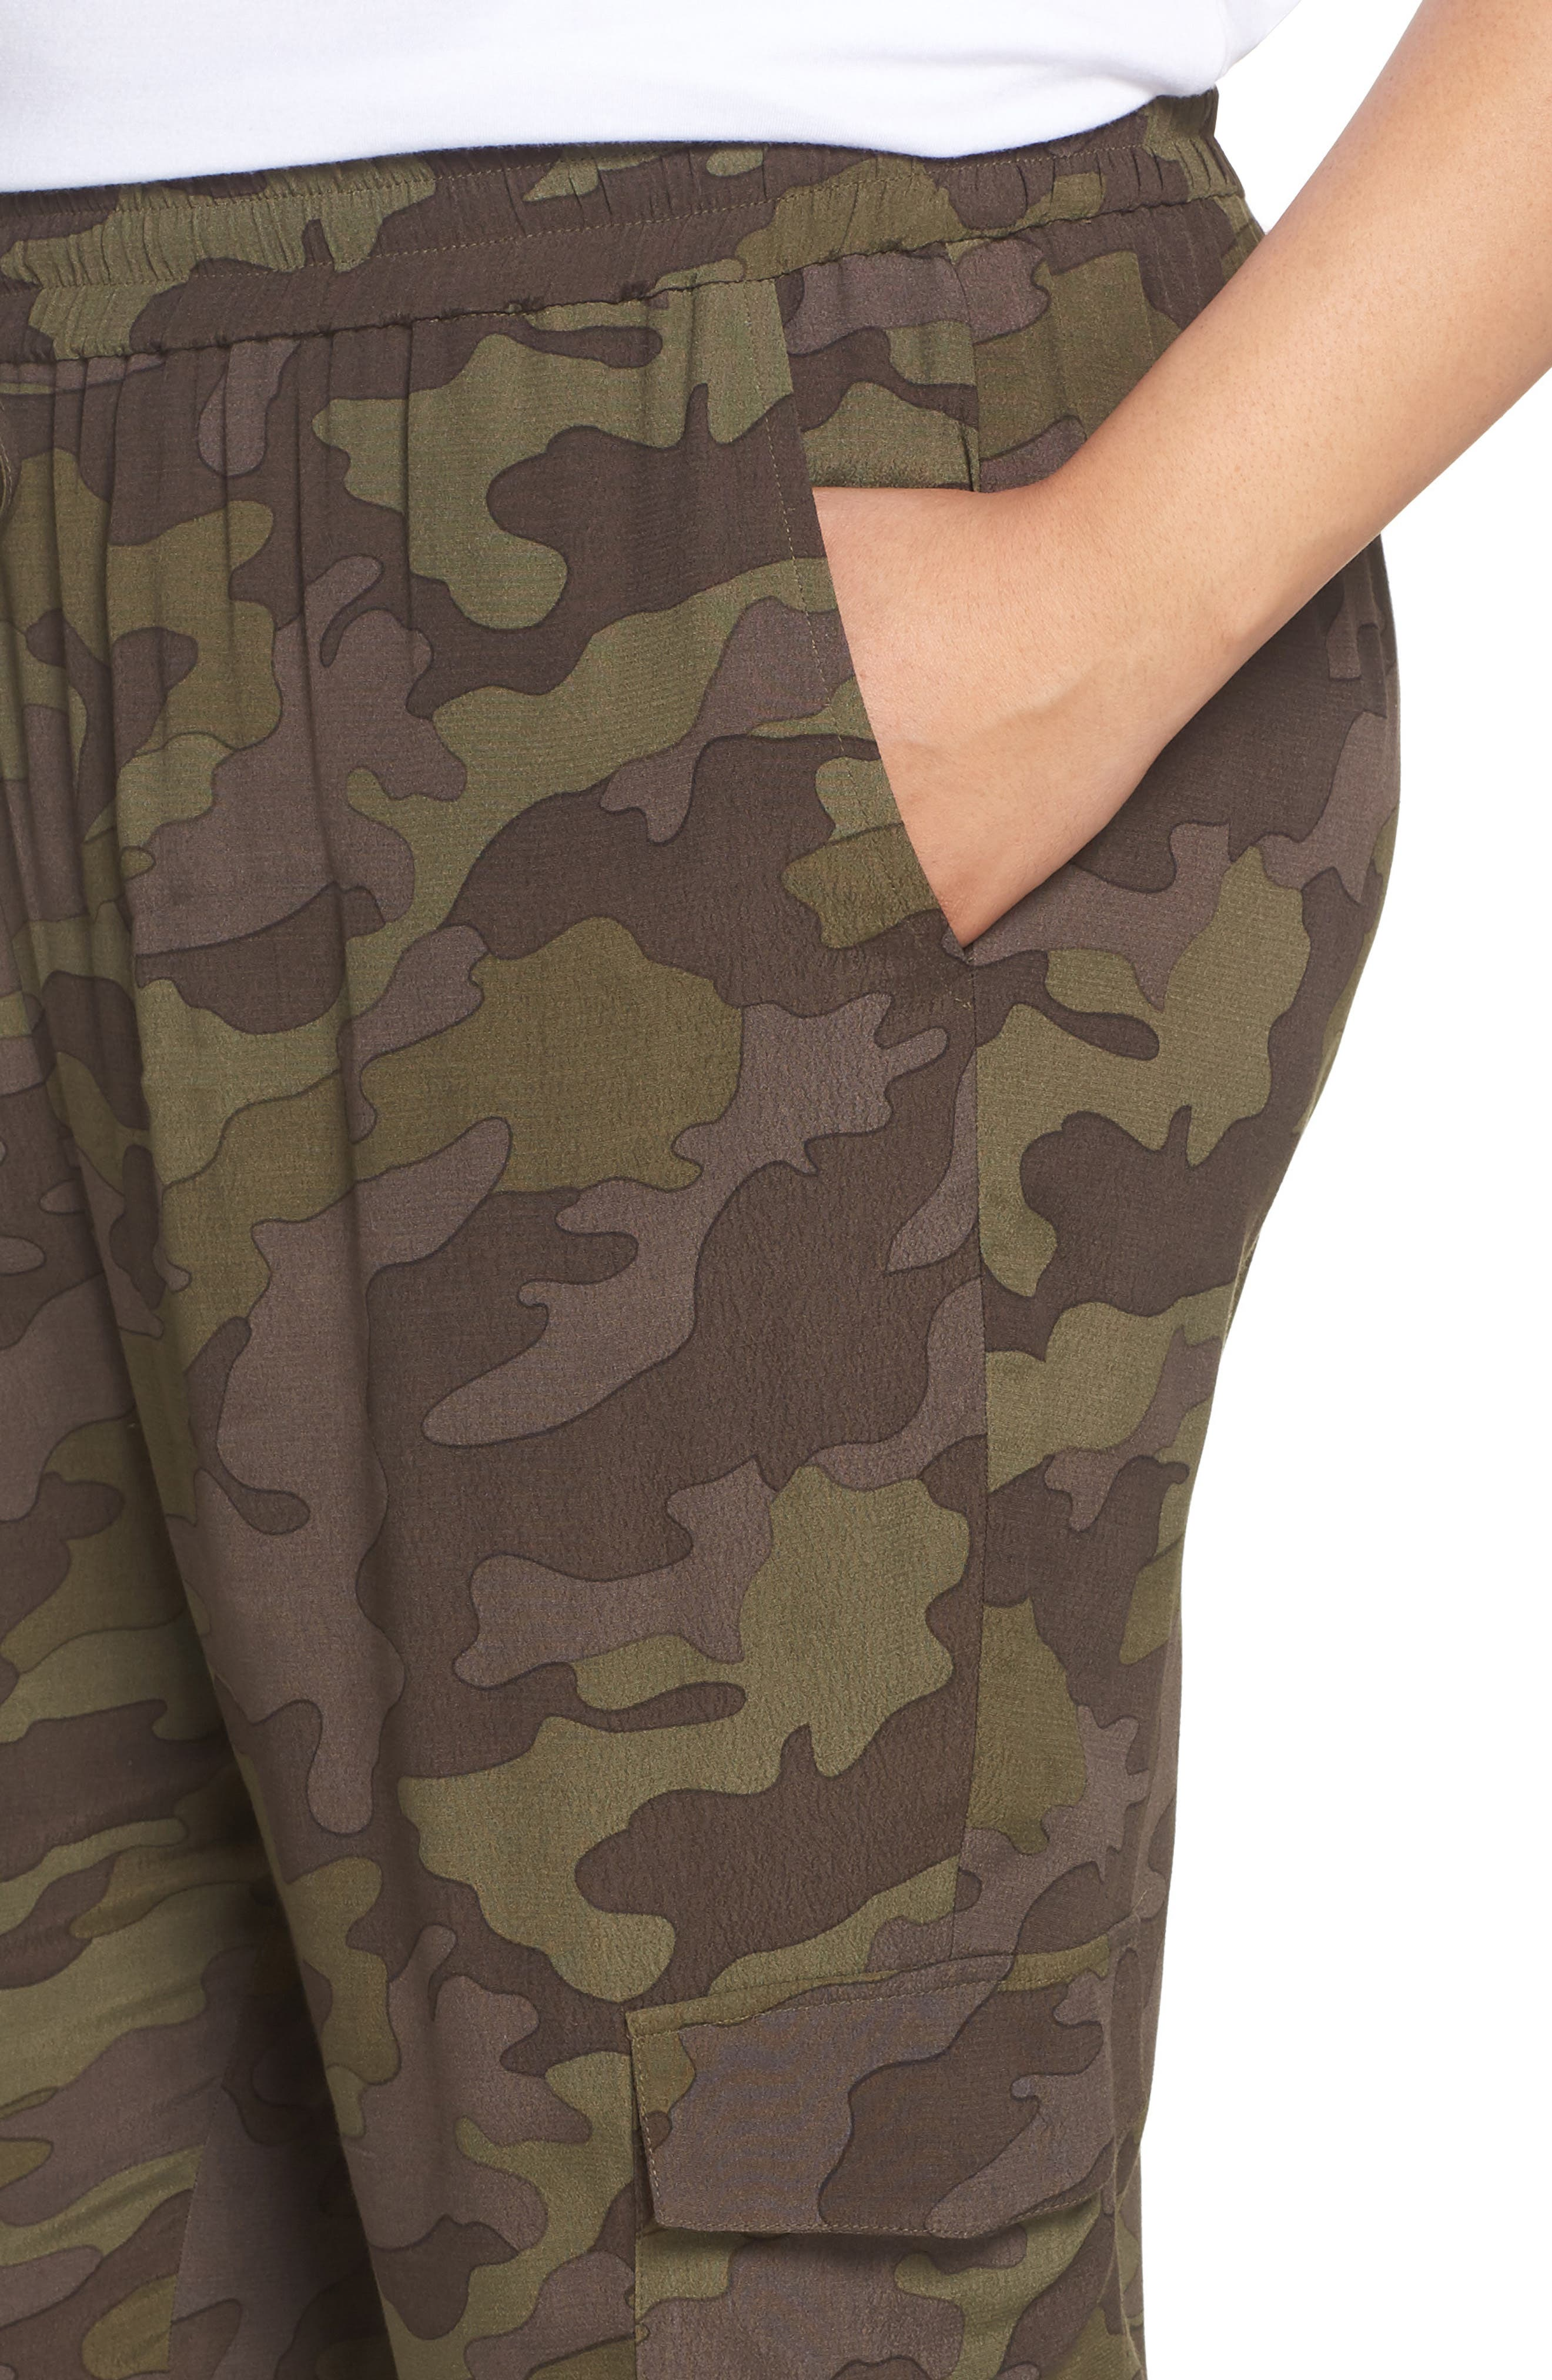 High Rise Camouflage Cargo Pants,                             Alternate thumbnail 10, color,                             210